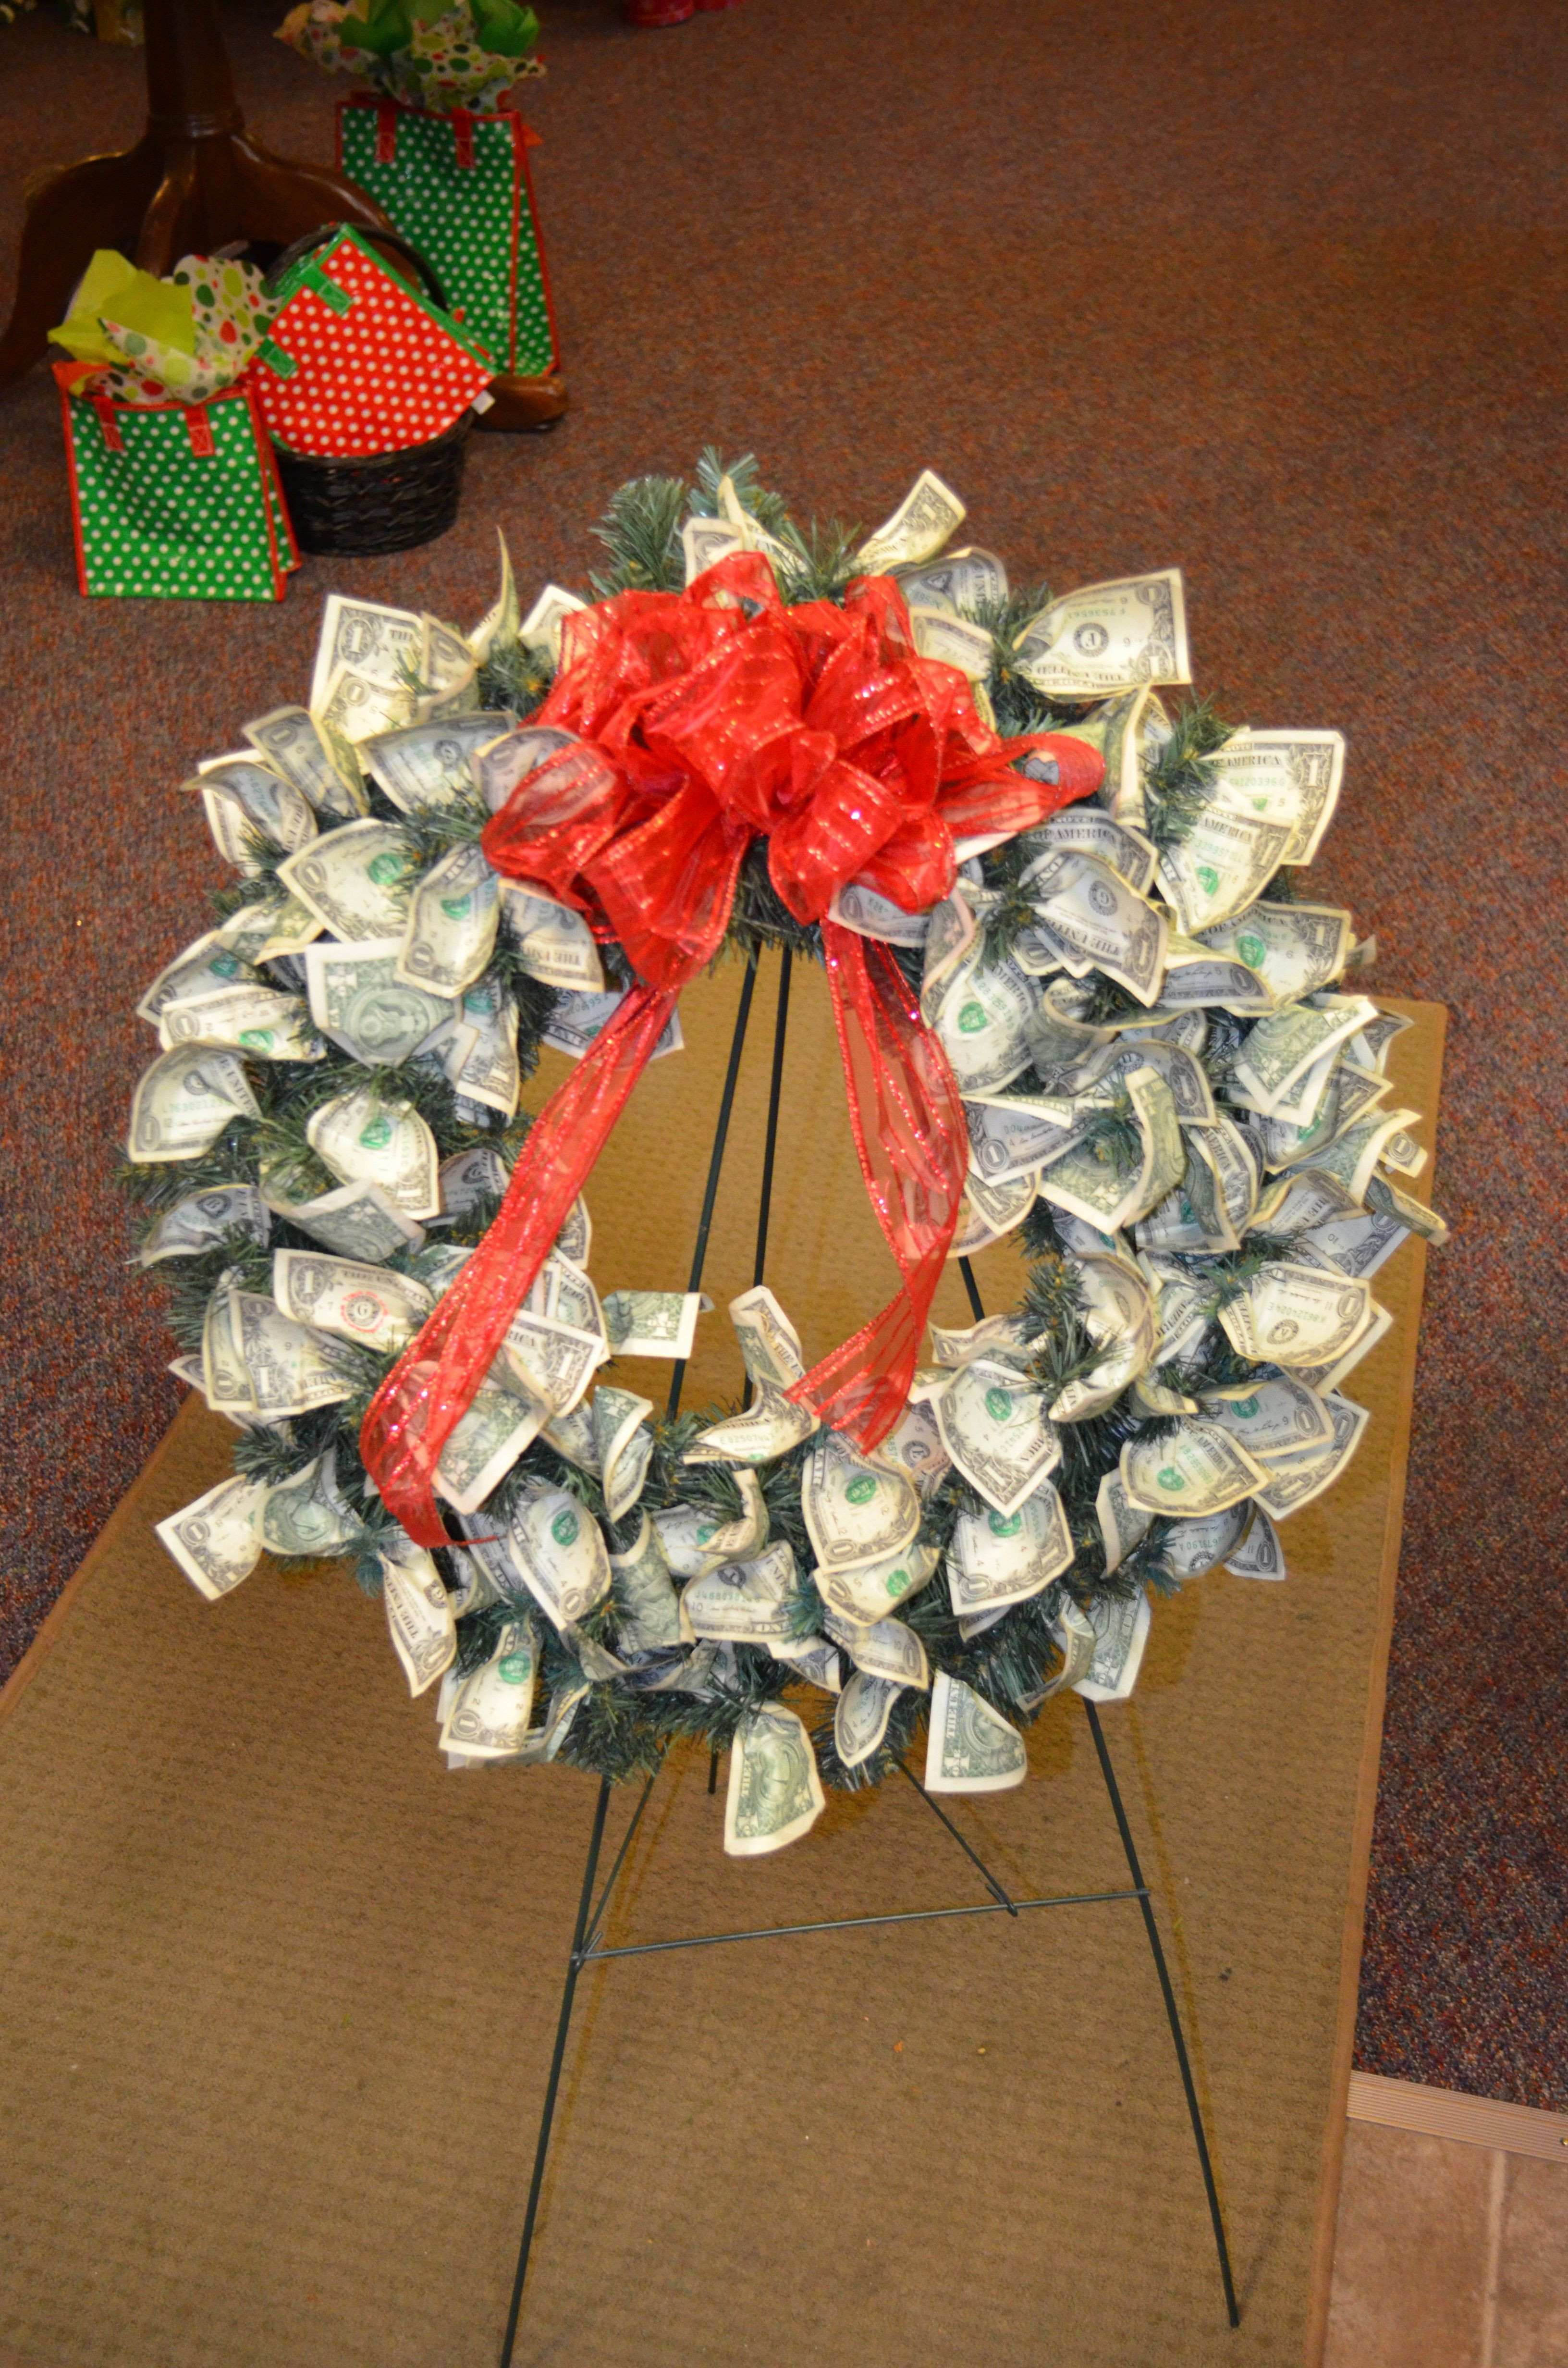 Best ideas about Dollar Bill Gift Ideas . Save or Pin Custom made Money Wreath 70 dollar bills for a 70th Now.